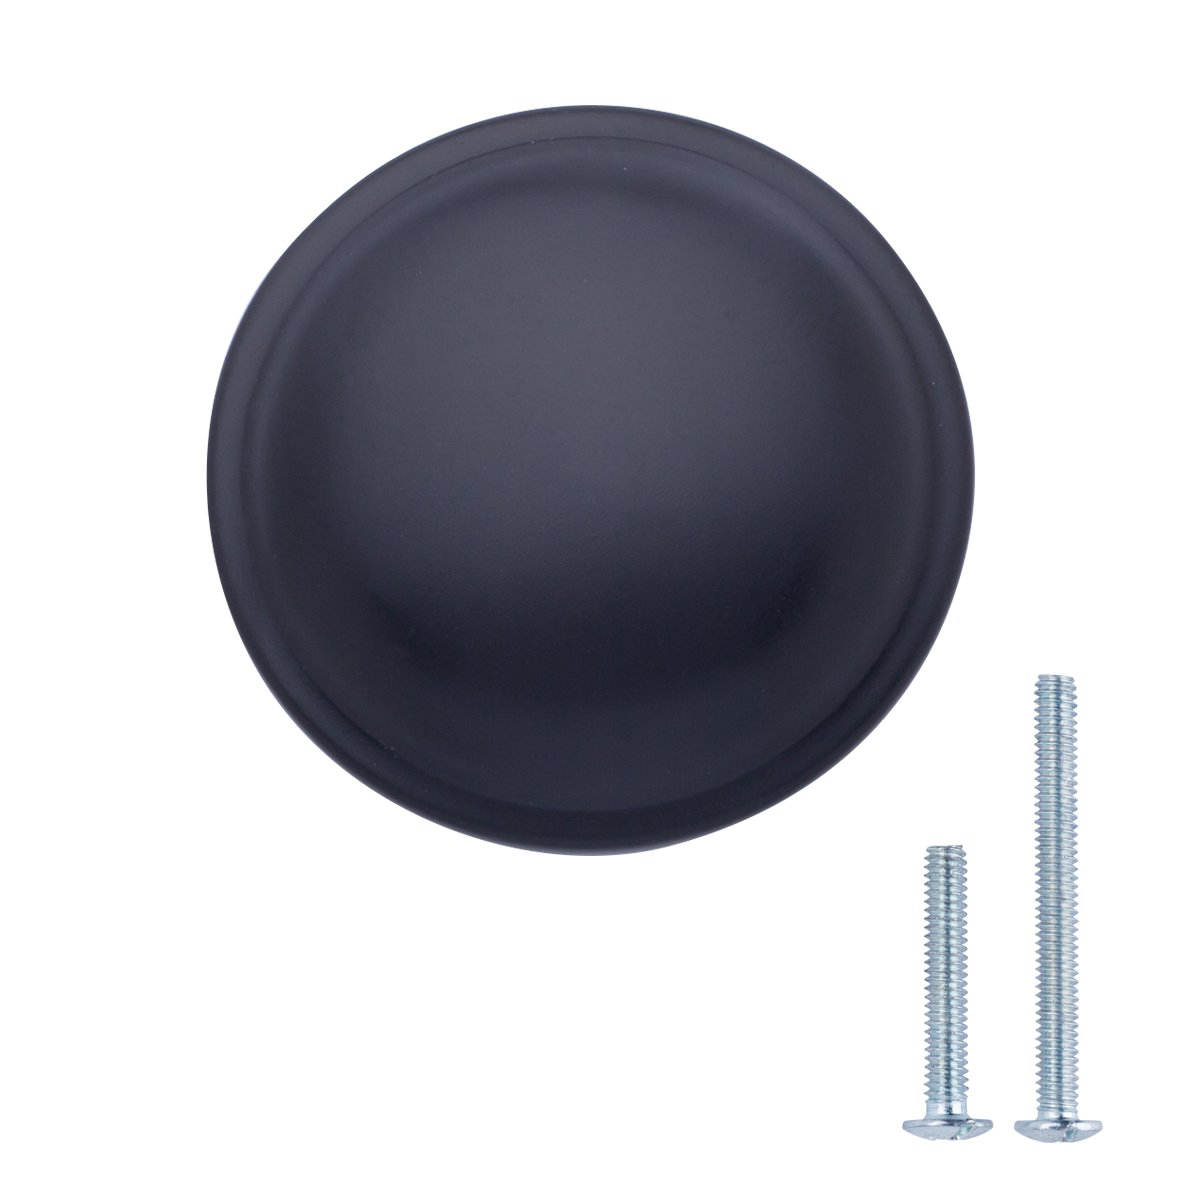 "AmazonBasics (AB300-FB-25) Mushroom Cabinet Knob, 1.19"" Diameter, Flat Black, 25-Pack"